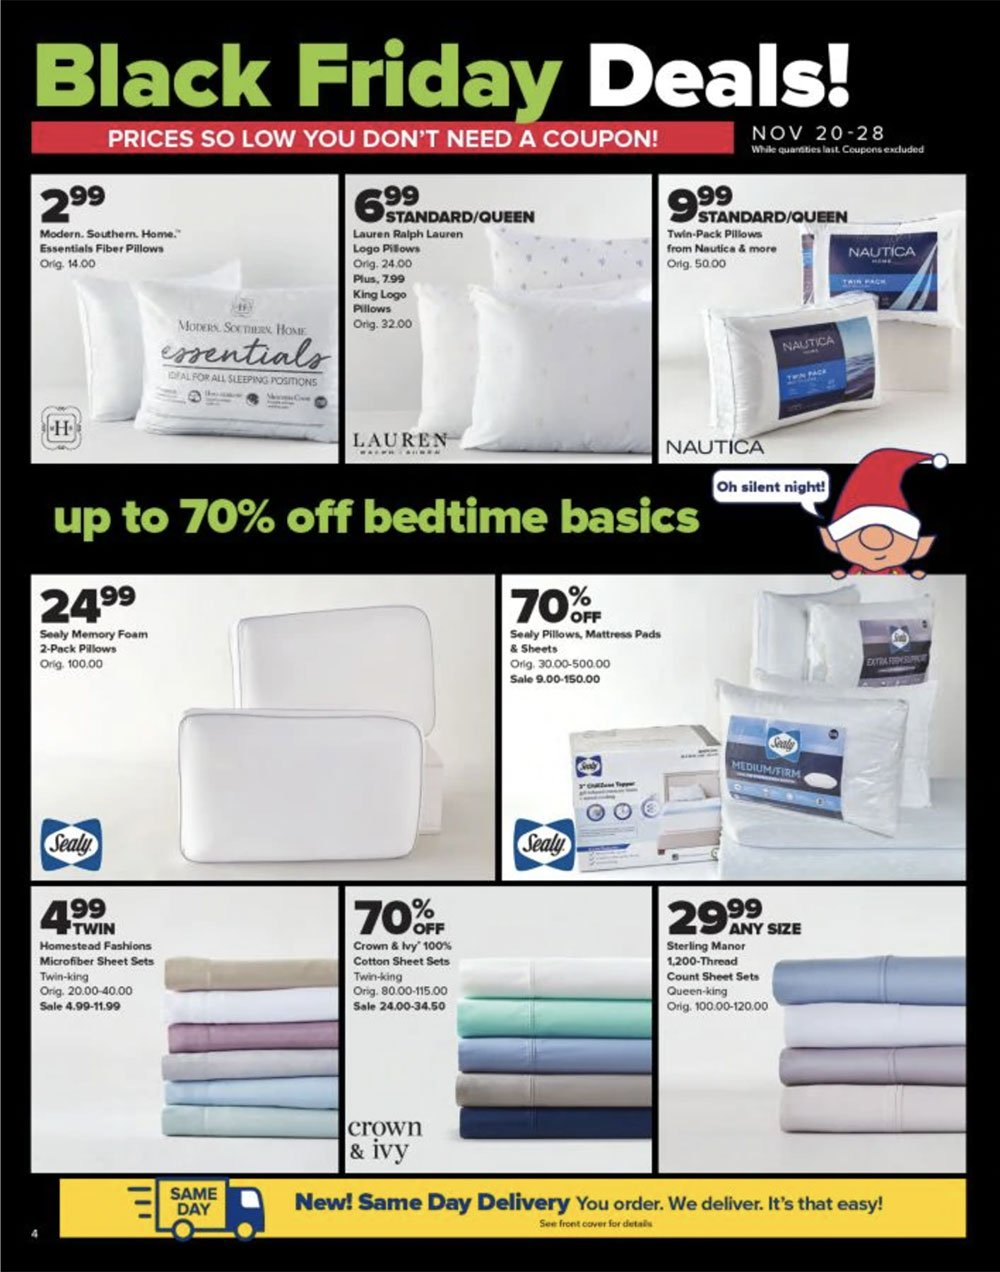 Belk Black Friday 2020 Page 4